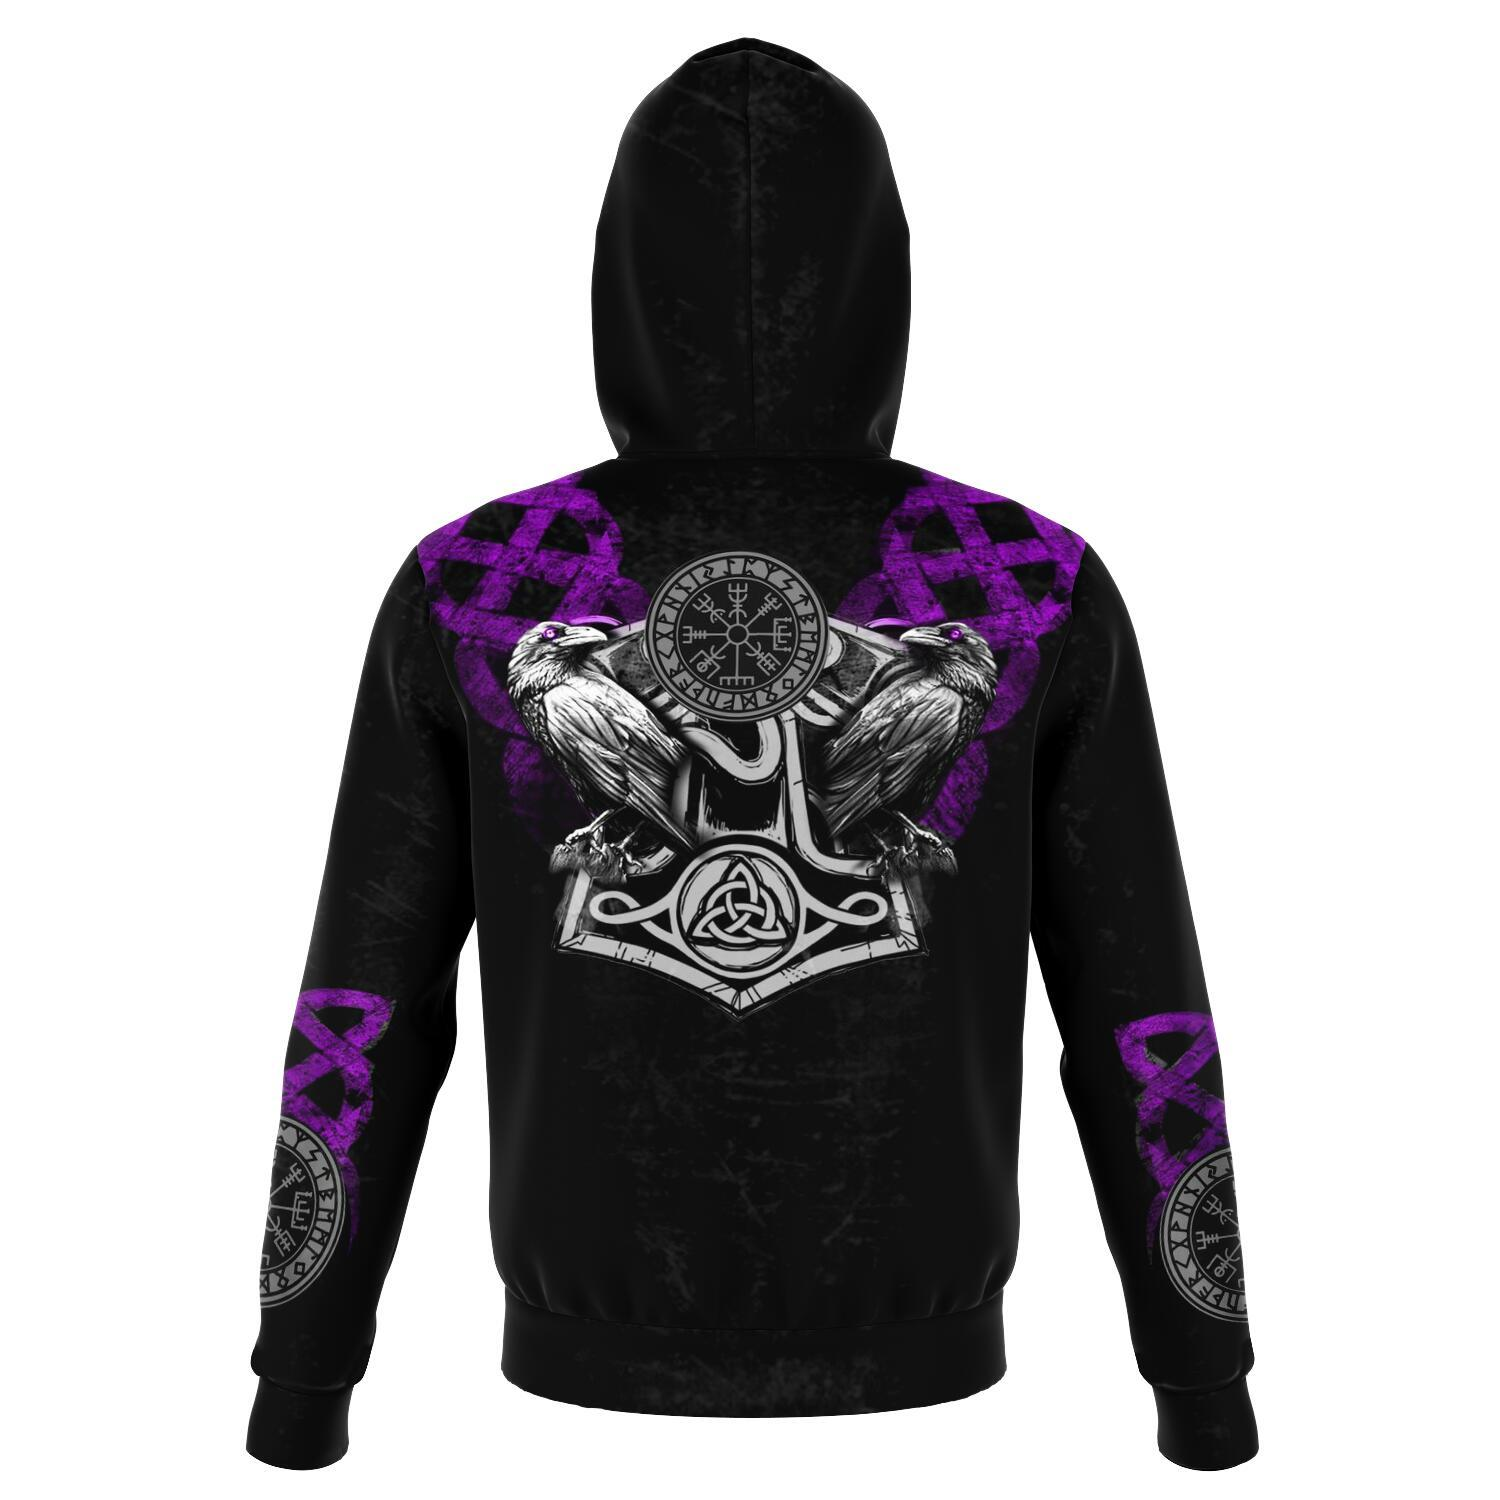 Viking Hoodie with Wolves and Ravens - Purple